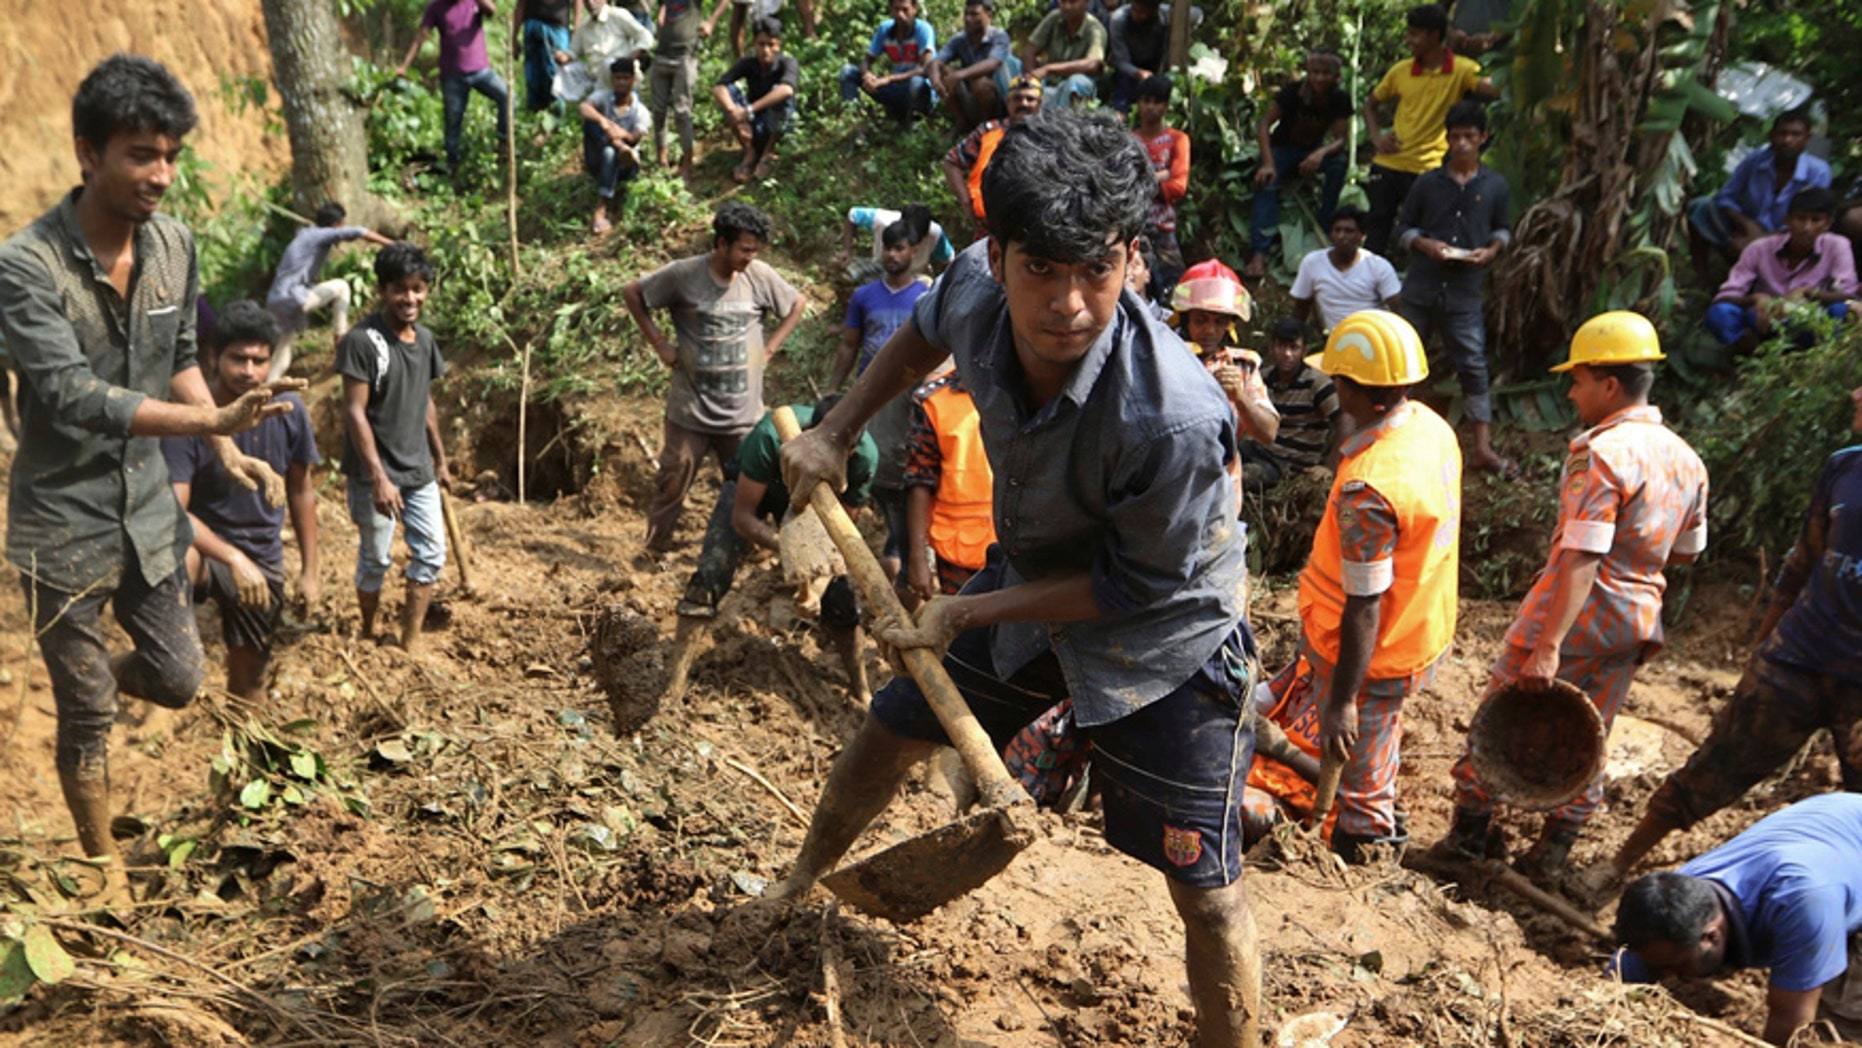 Rescuers search for survivors and bodies after Tuesday's massive landslide in Rangamati district, Bangladesh, Wednesday, June 14, 2017. Rescuers struggled on Wednesday to reach villages hit by massive landslides that have killed more than a hundred while also burying roads and cutting power in southeastern Bangladesh, officials said. (AP Photo)